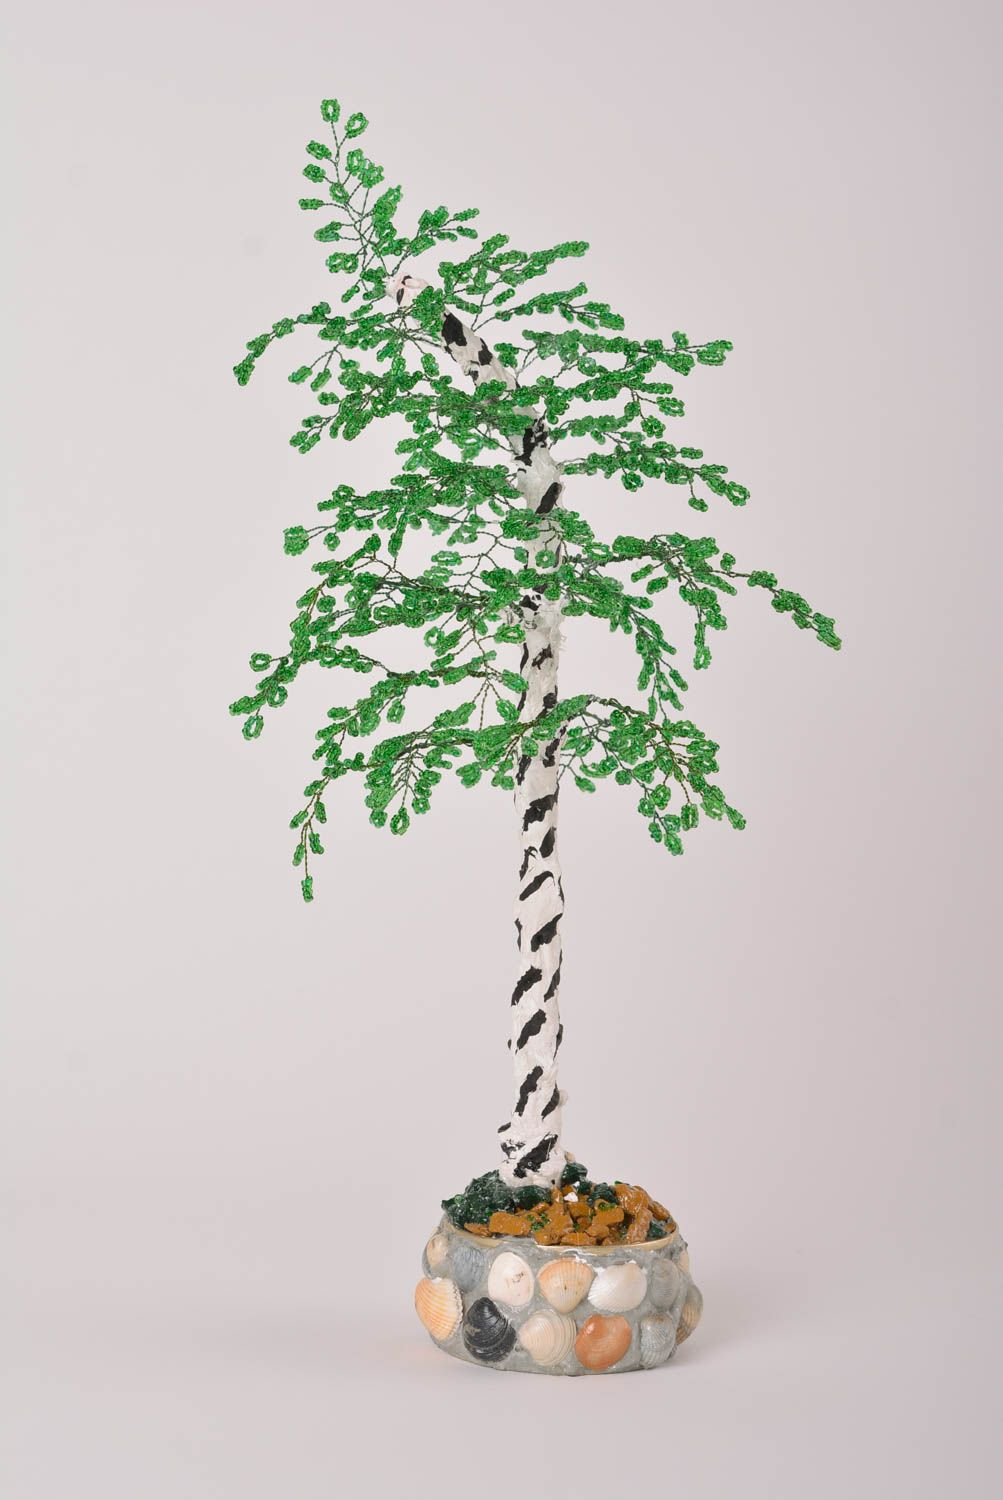 Homemade home decor artificial tree bead weaving topiary tree for decorative use photo 1